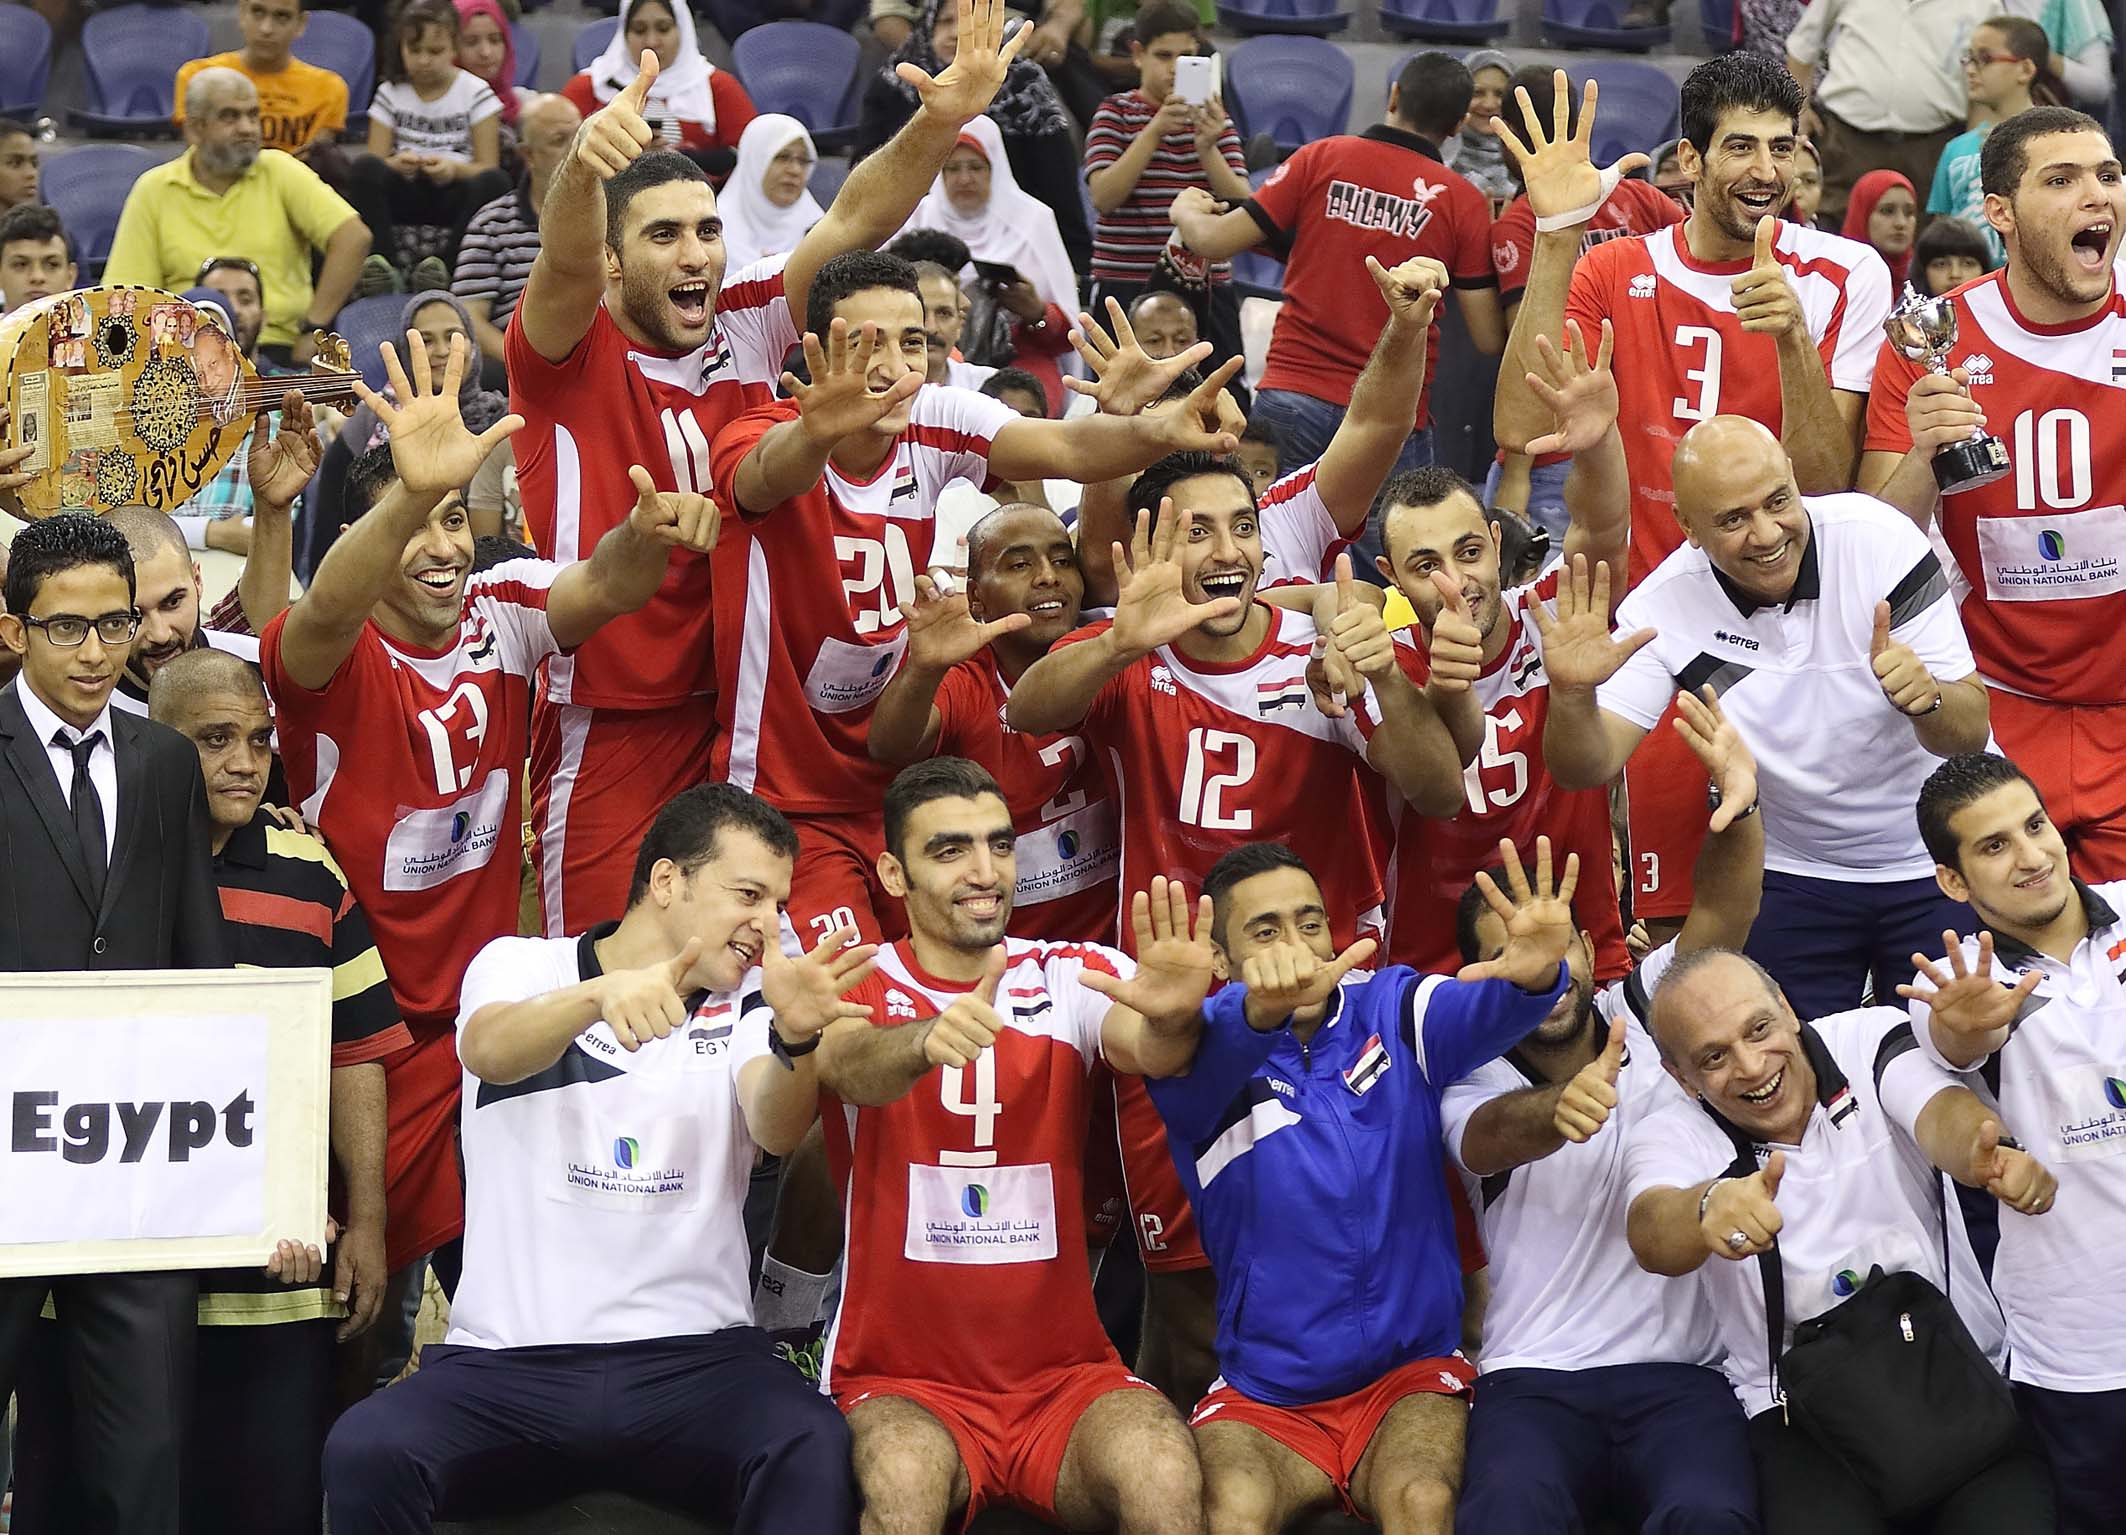 Egypt celebrates after clenching the African Cup. Credit: International Volleyball Federation